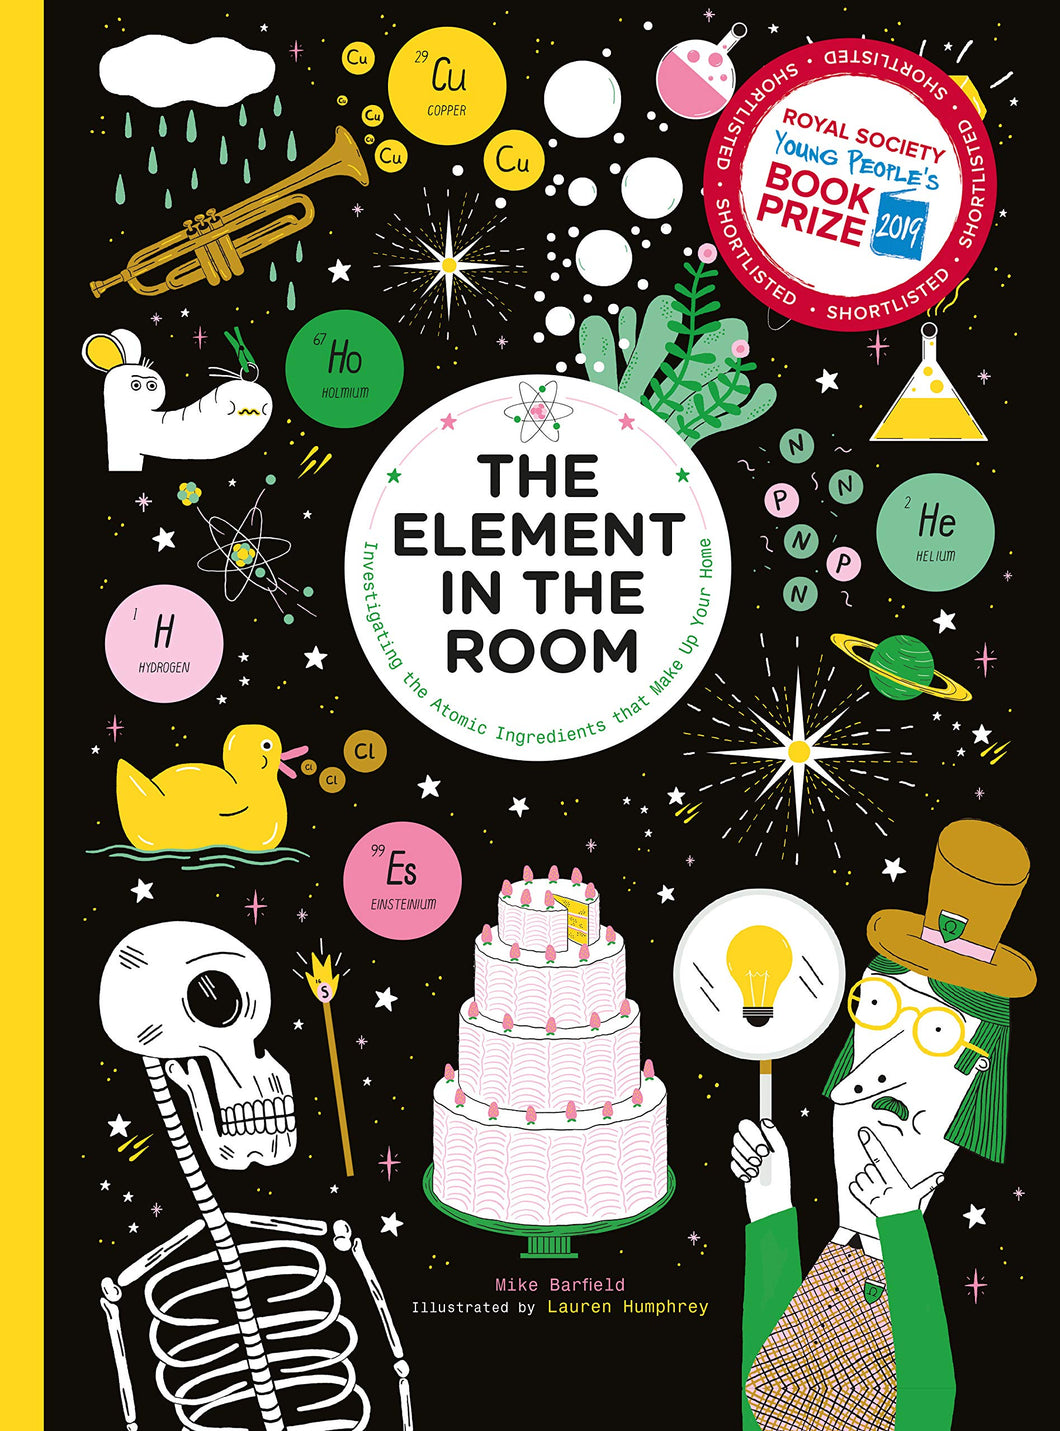 Element in the Room: Investigating the Atomic Ingredients that Make Up Your Home